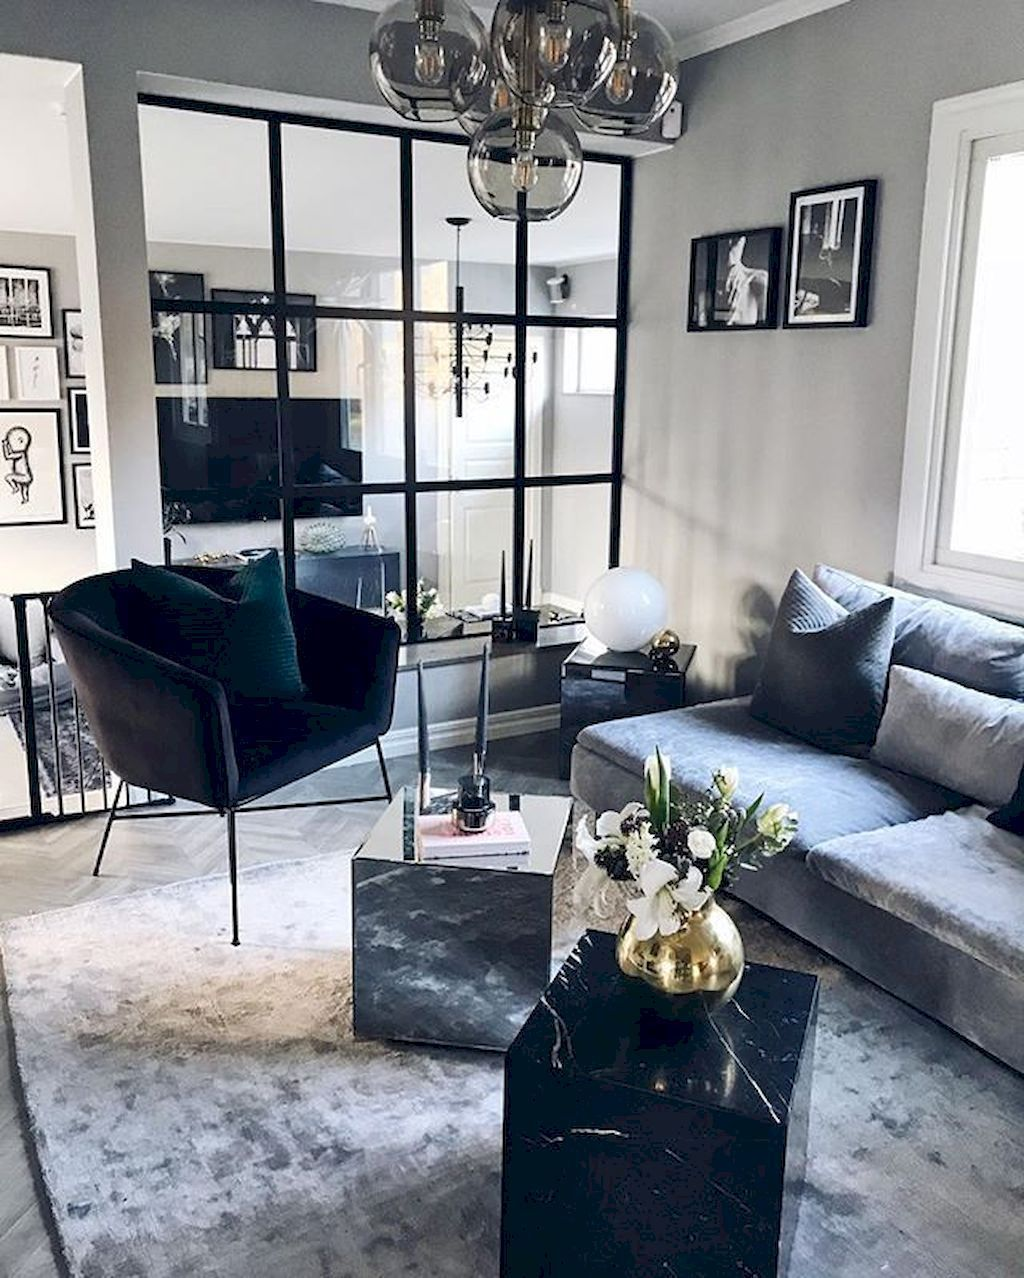 You Can Add Some Scandinavian Style Into Any Room Living Room Bathroom Bedroom Just Living Room Scandinavian Contemporary Home Decor Modern Interior Design